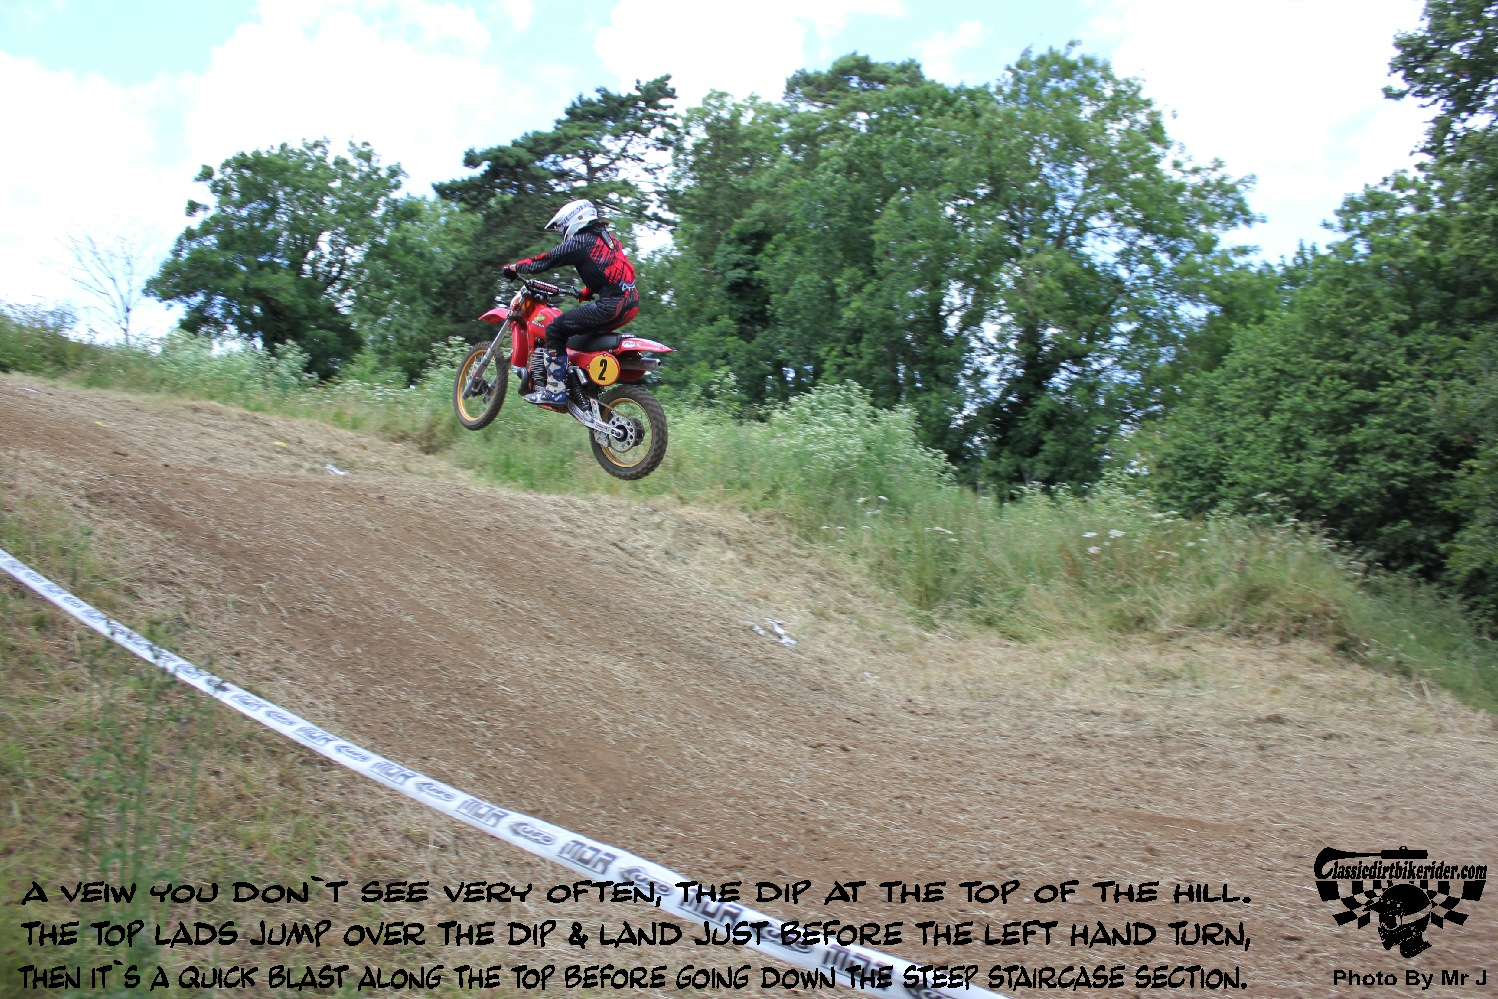 king of the castle 2015 photos Farleigh Castle twinshock motocross classicdirtbikerider.com 142